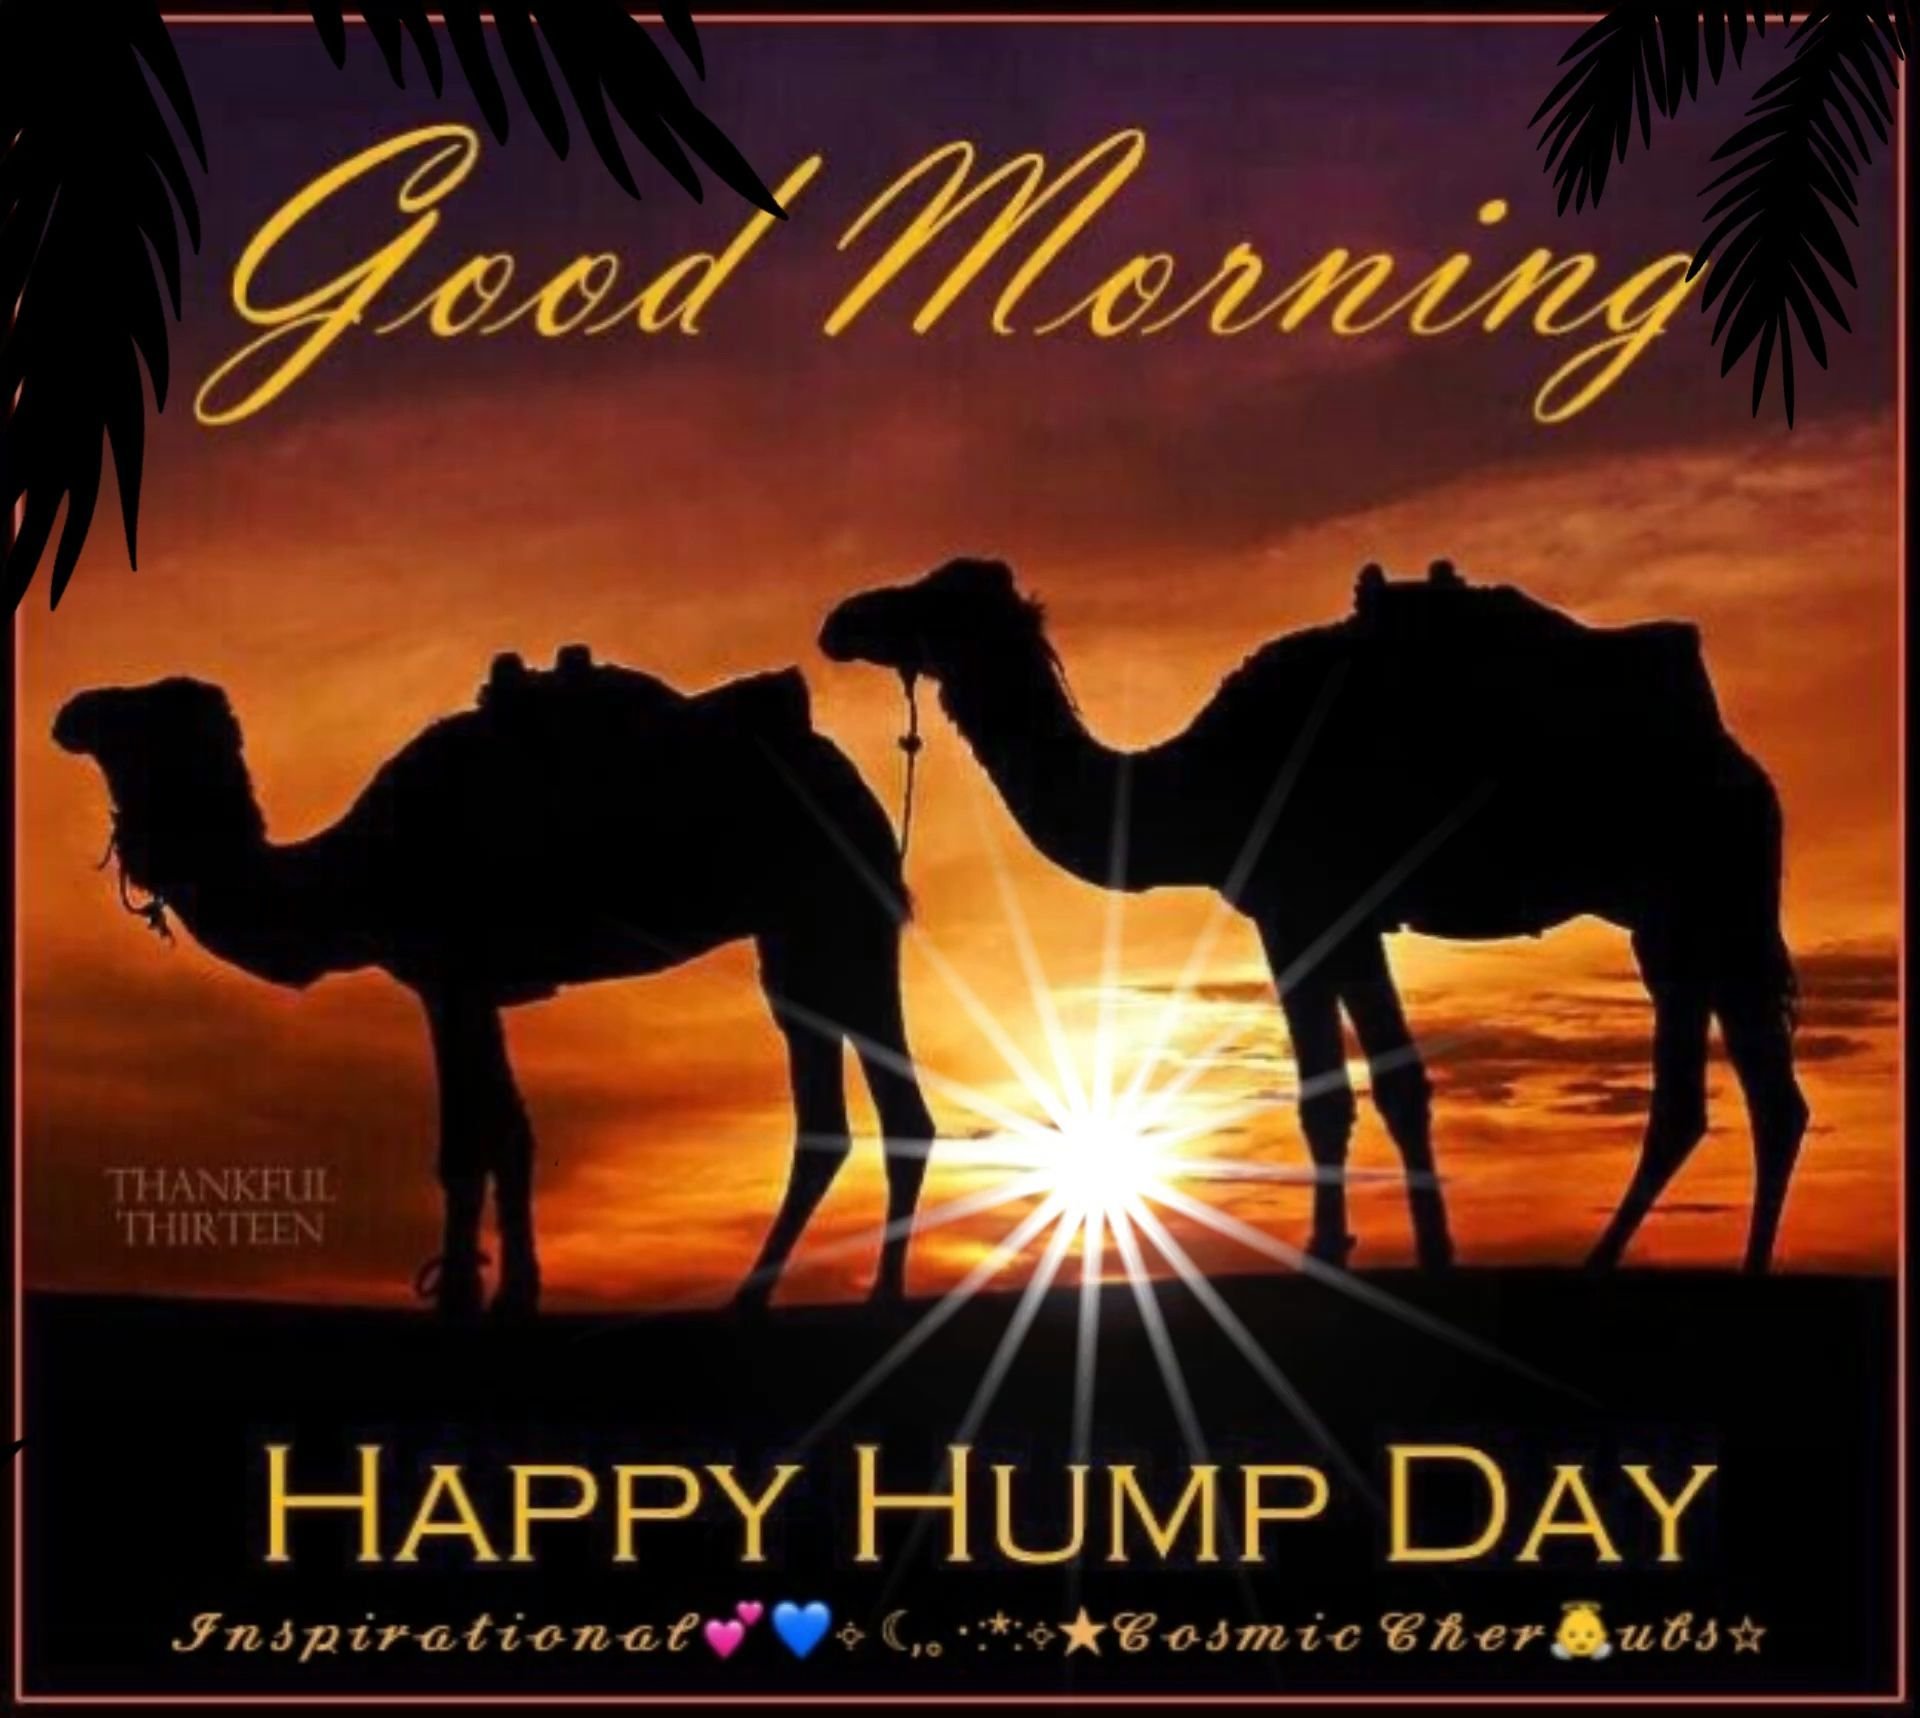 Good Morning Happy Wednesday Quotes Wednesday Hump Day Good Morning Funny